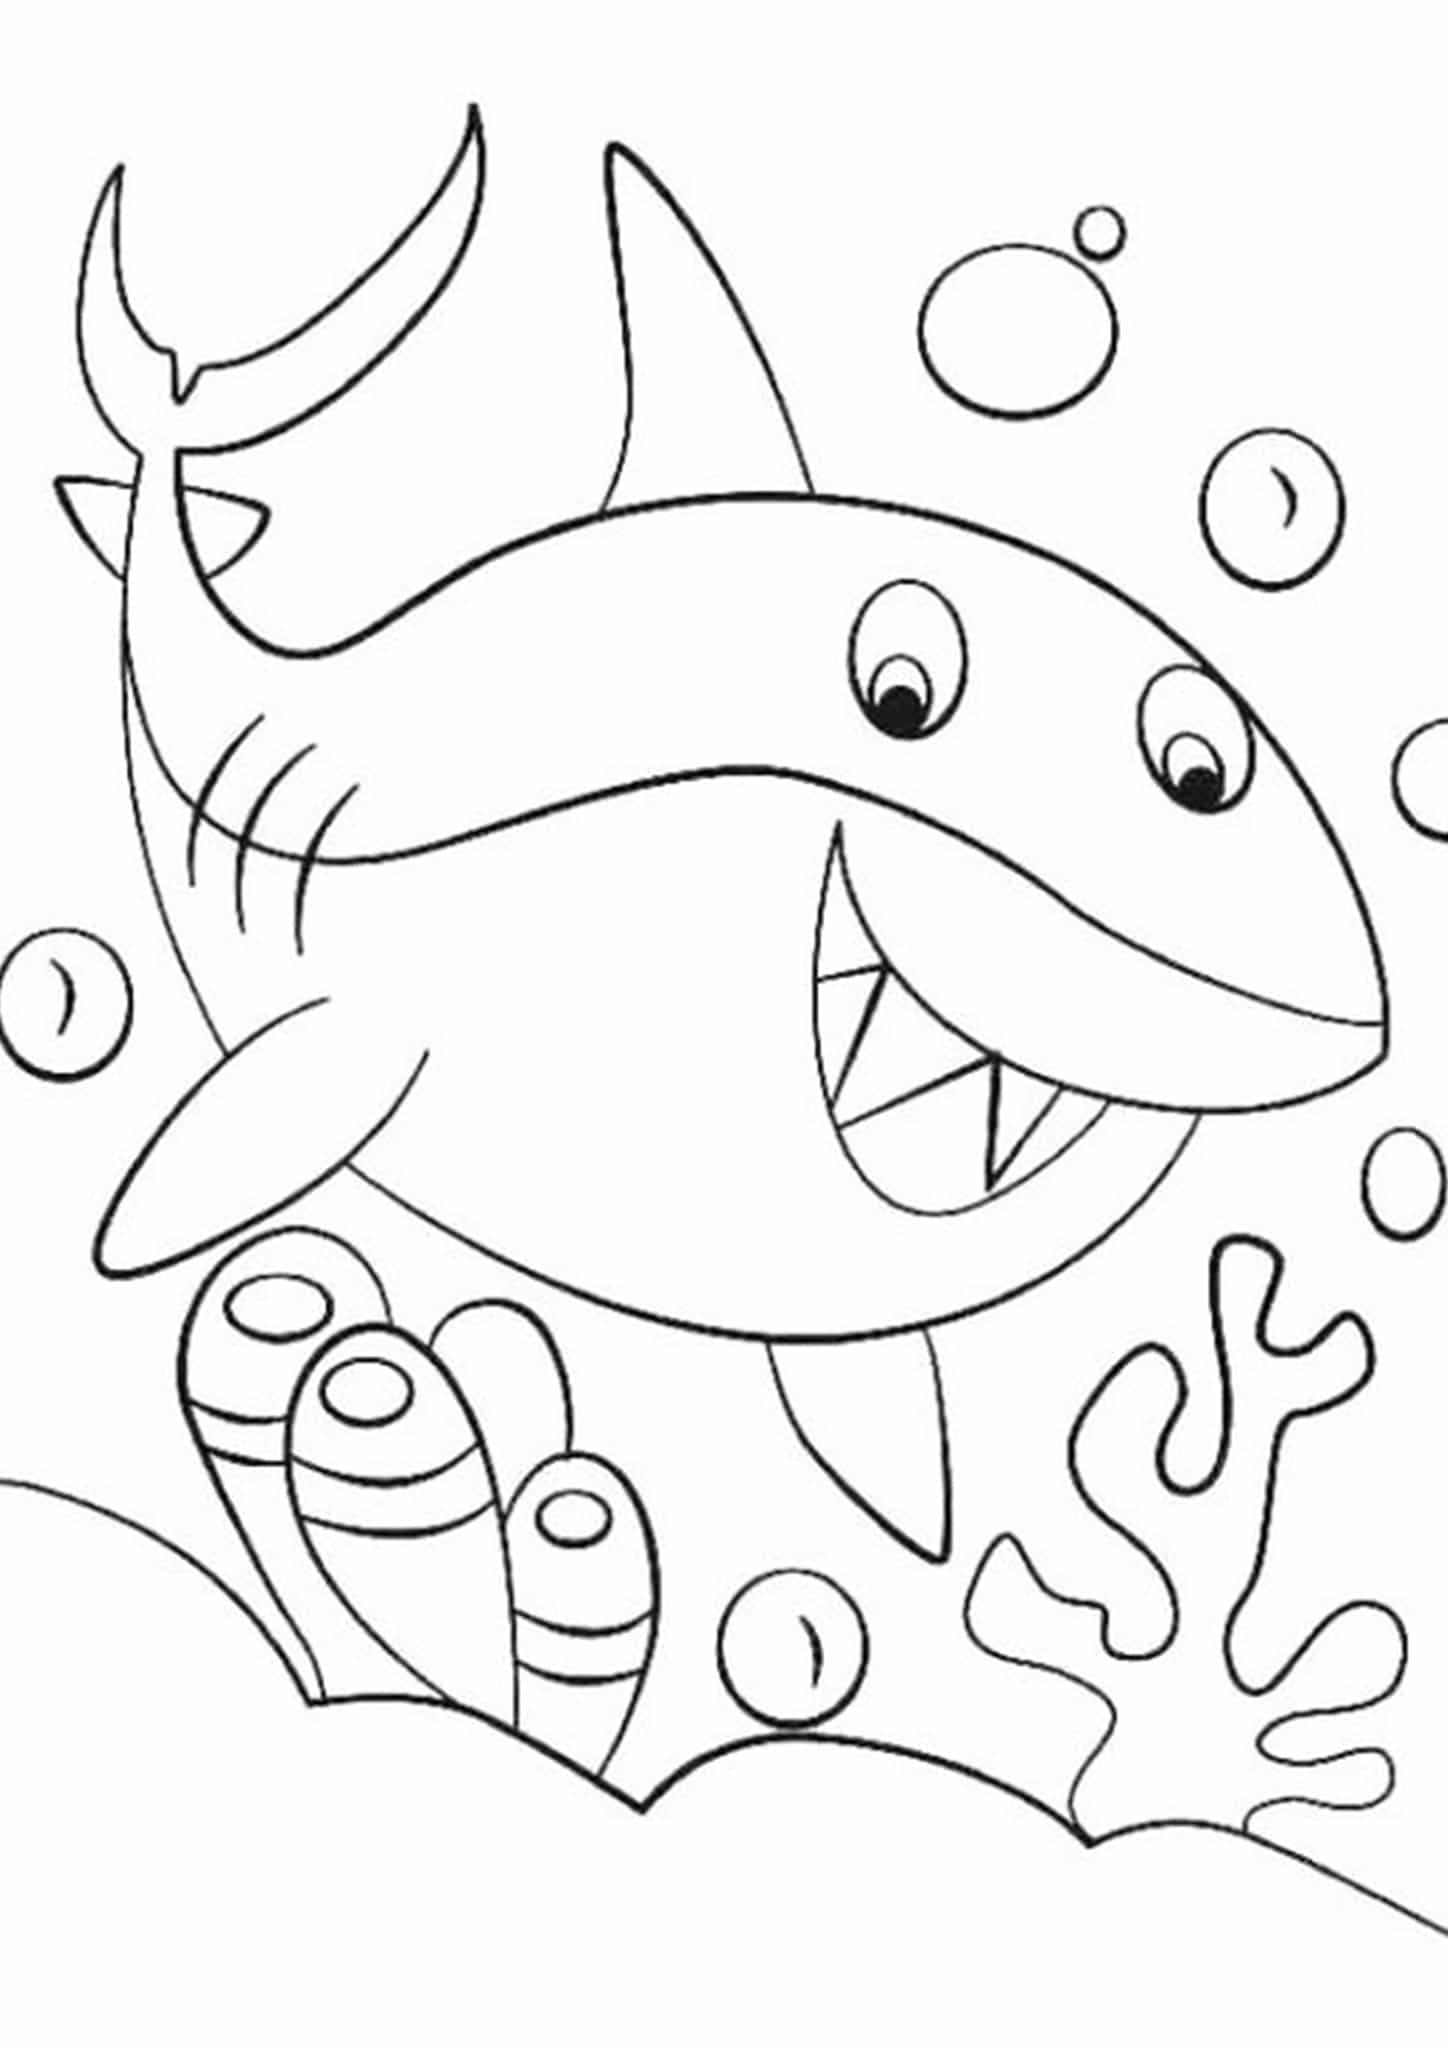 pictures of sharks to colour in free easy to print shark coloring pages tulamama pictures to sharks of in colour